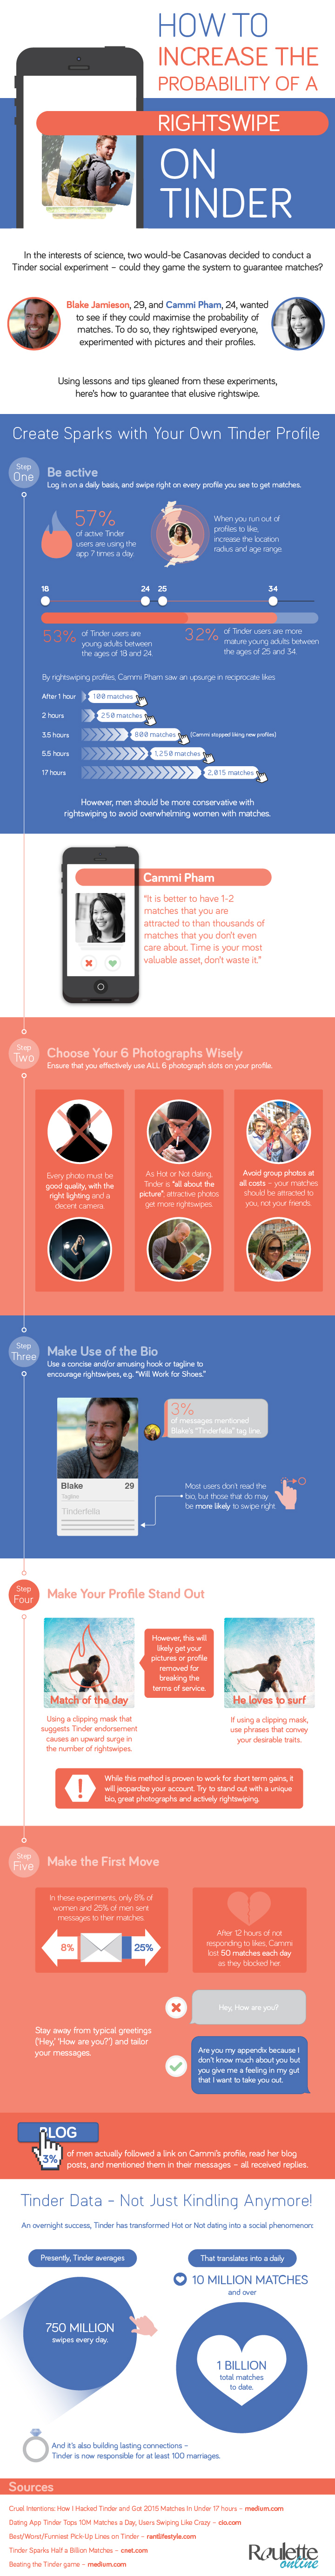 Tinder Infographic